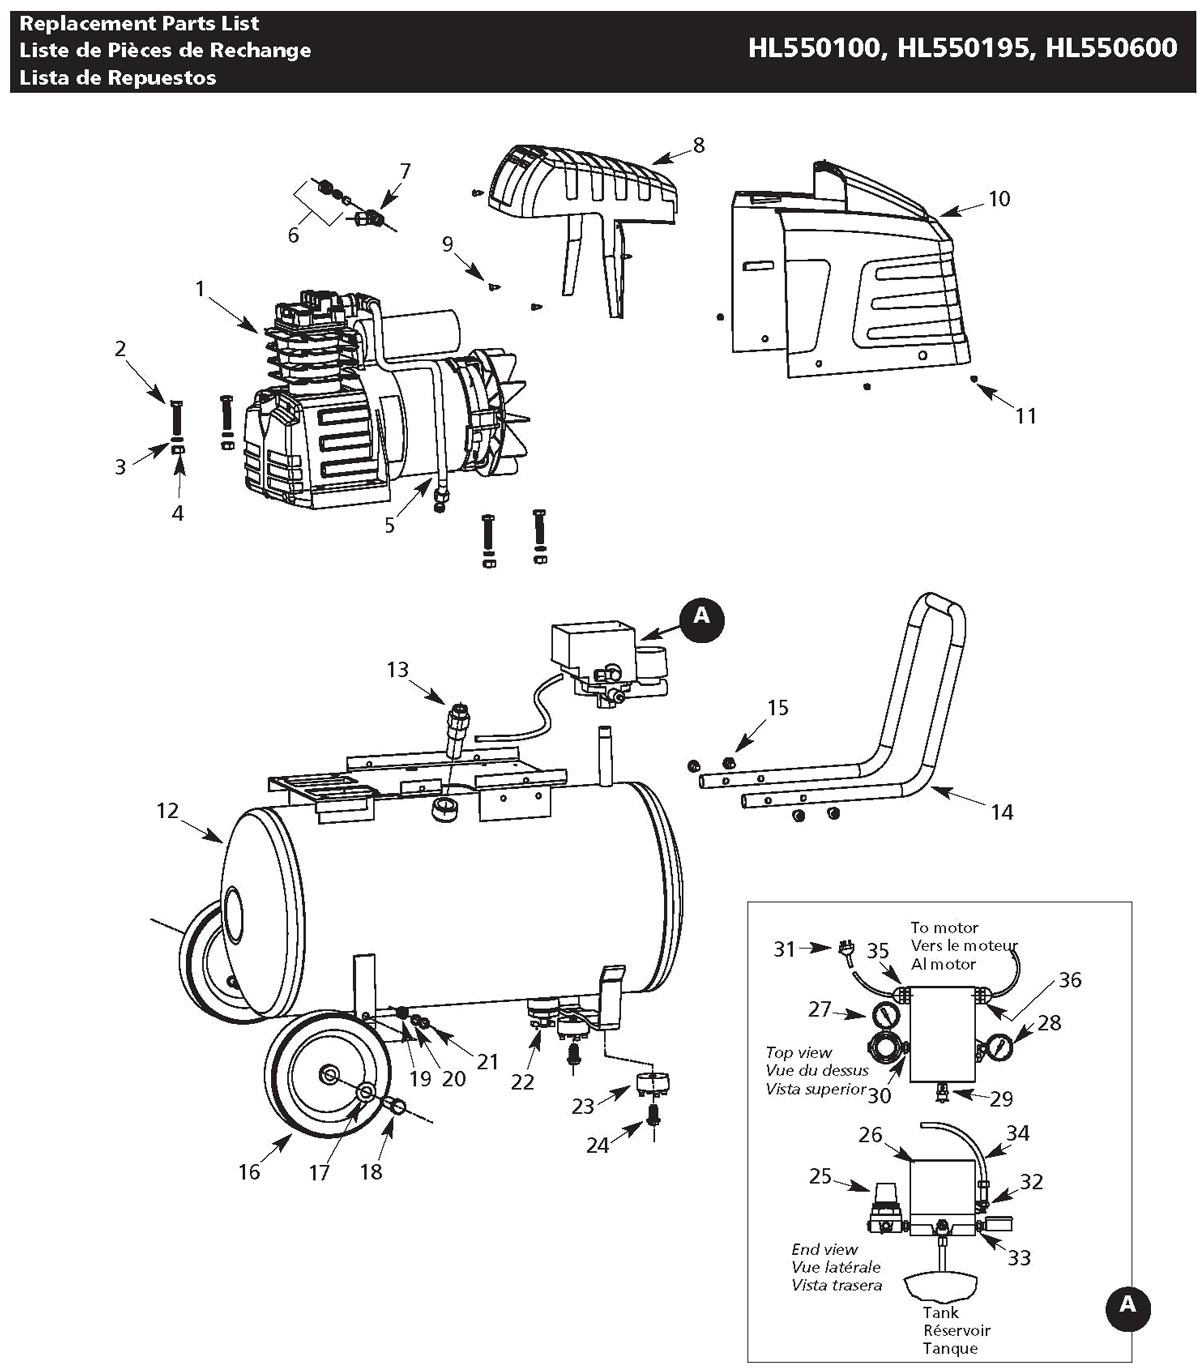 HL550100, HL550195, HL550600 - Air Compressor Parts schematic